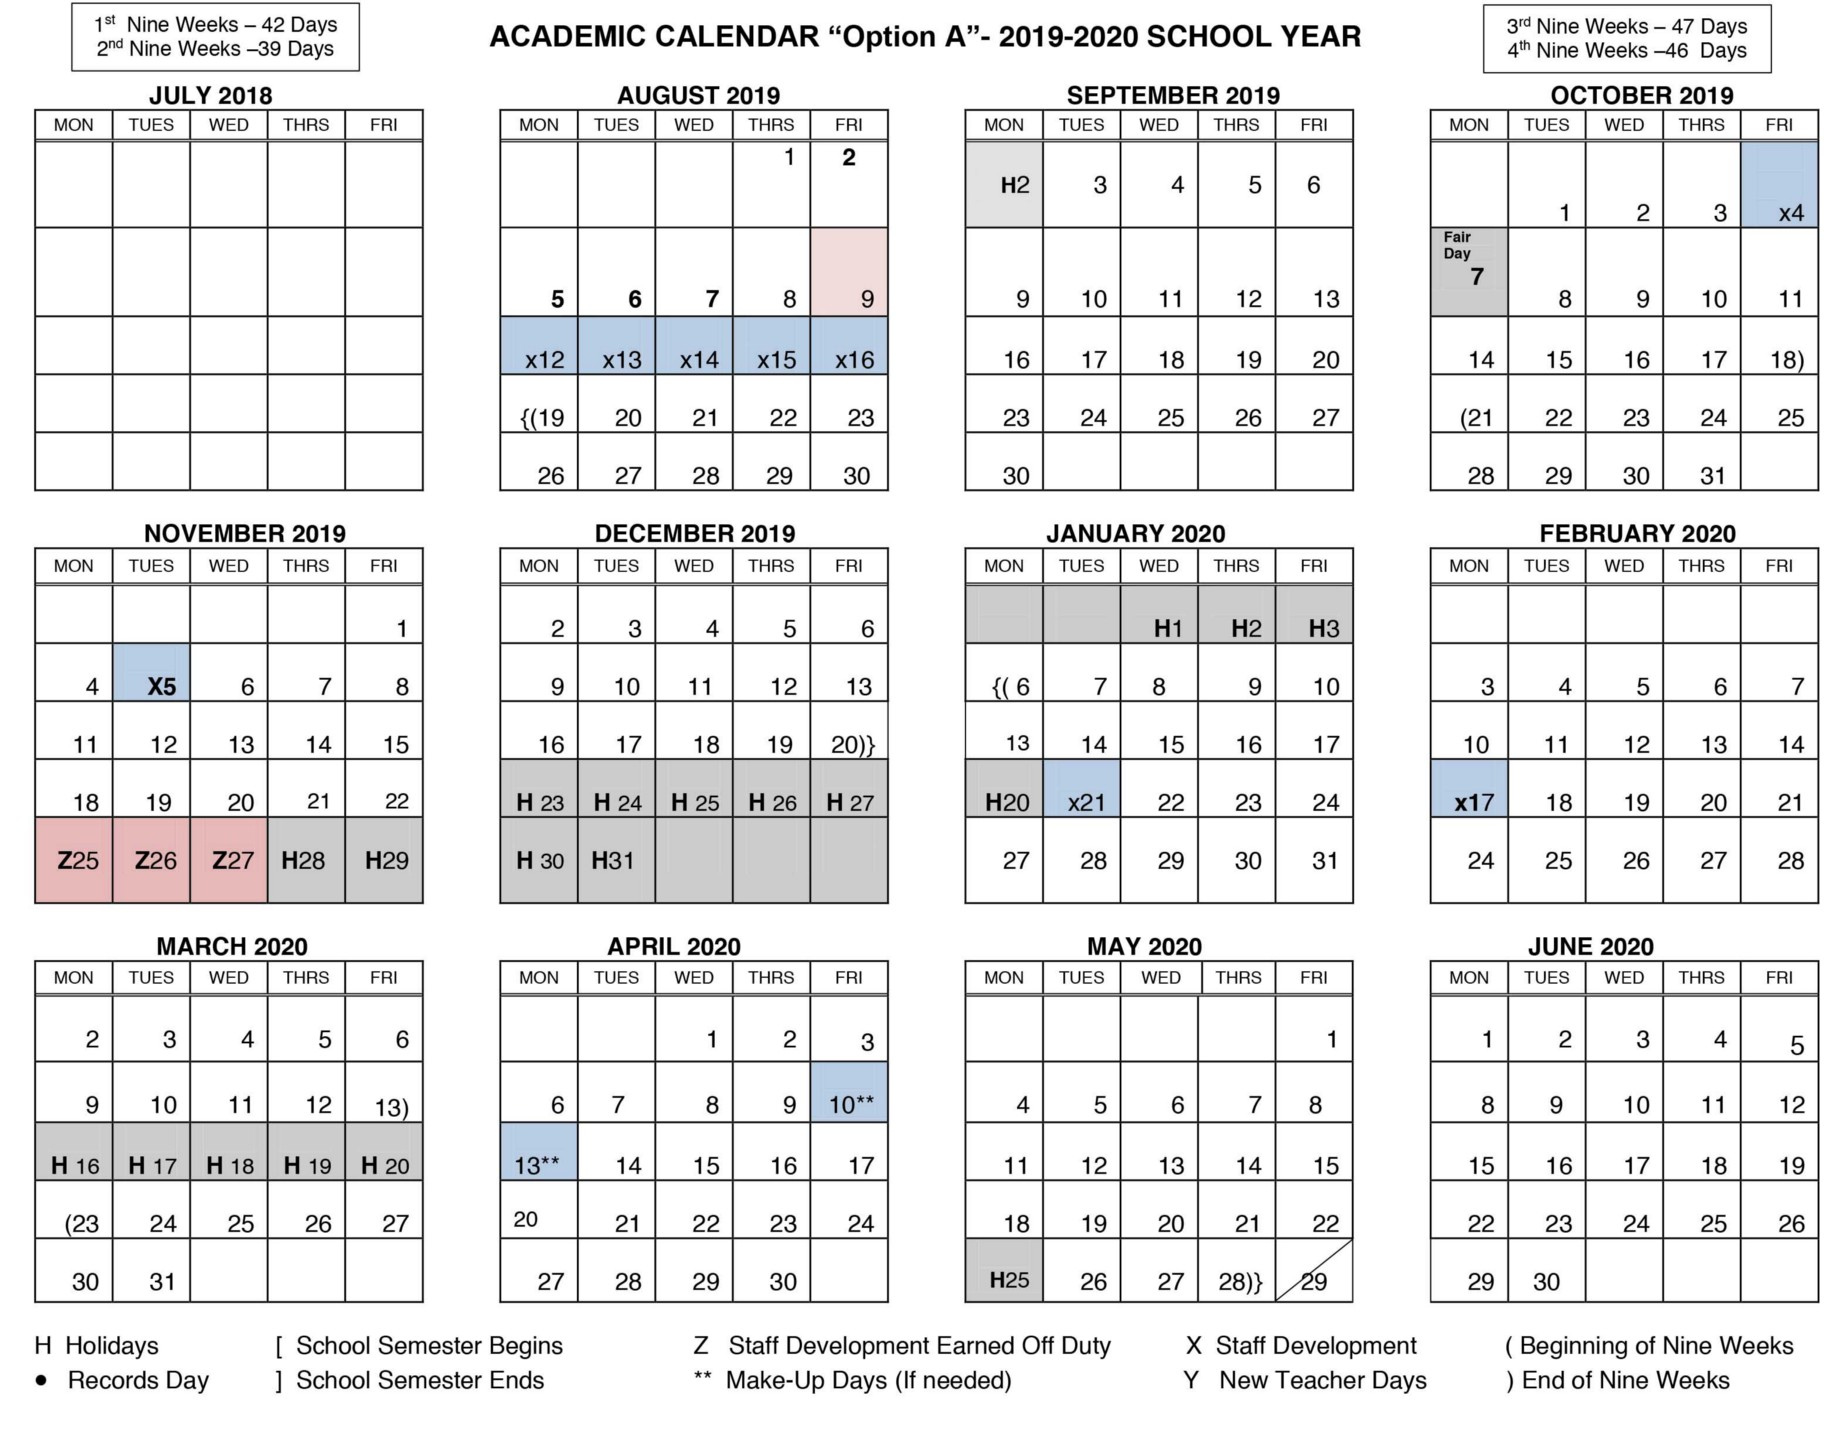 Cuny Spring 2020 Calendar.Board Discusses 2019 2020 Student Academic Calendar